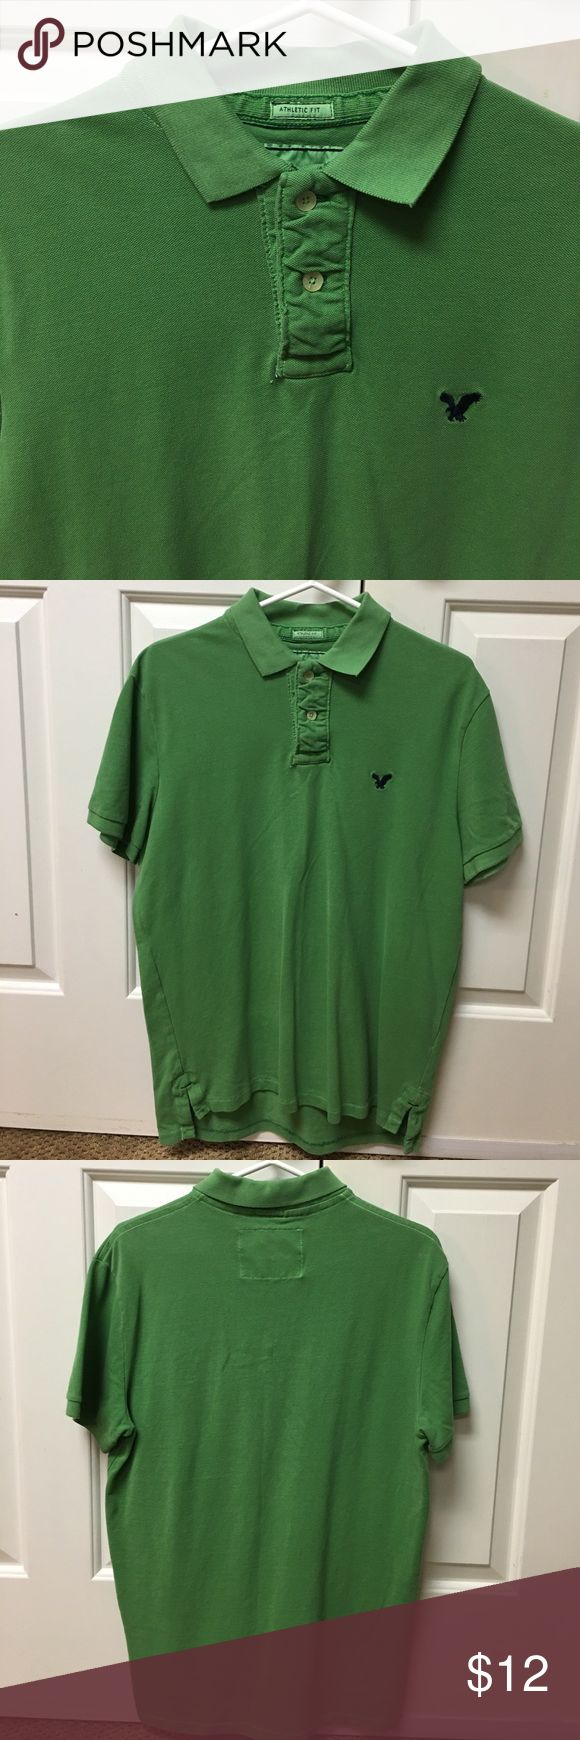 EUC Men's American Eagle Green Polo Shirt - Sz Med EUC American Eagle Green Polo shirt in a size Medium. Athletic Fit. American Eagle Outfitters Shirts Polos